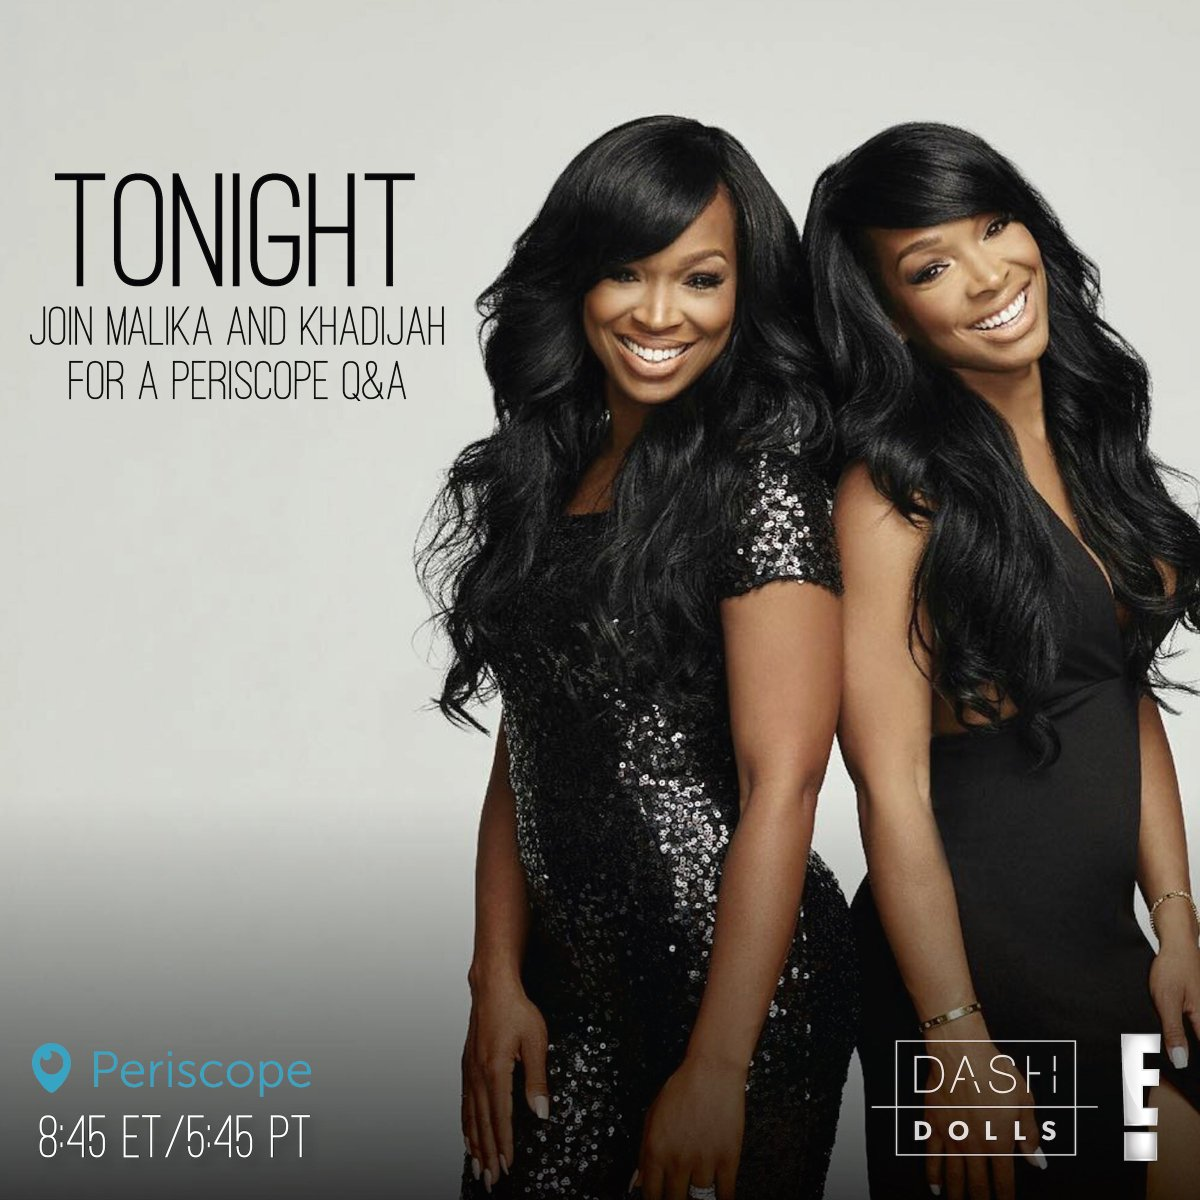 RT @DashDolls: RT if you'll be tuning in to the LIVE @DashDolls #Periscope with Malika & Khadijah tonight! https://t.co/qUO05aFkOT https://…